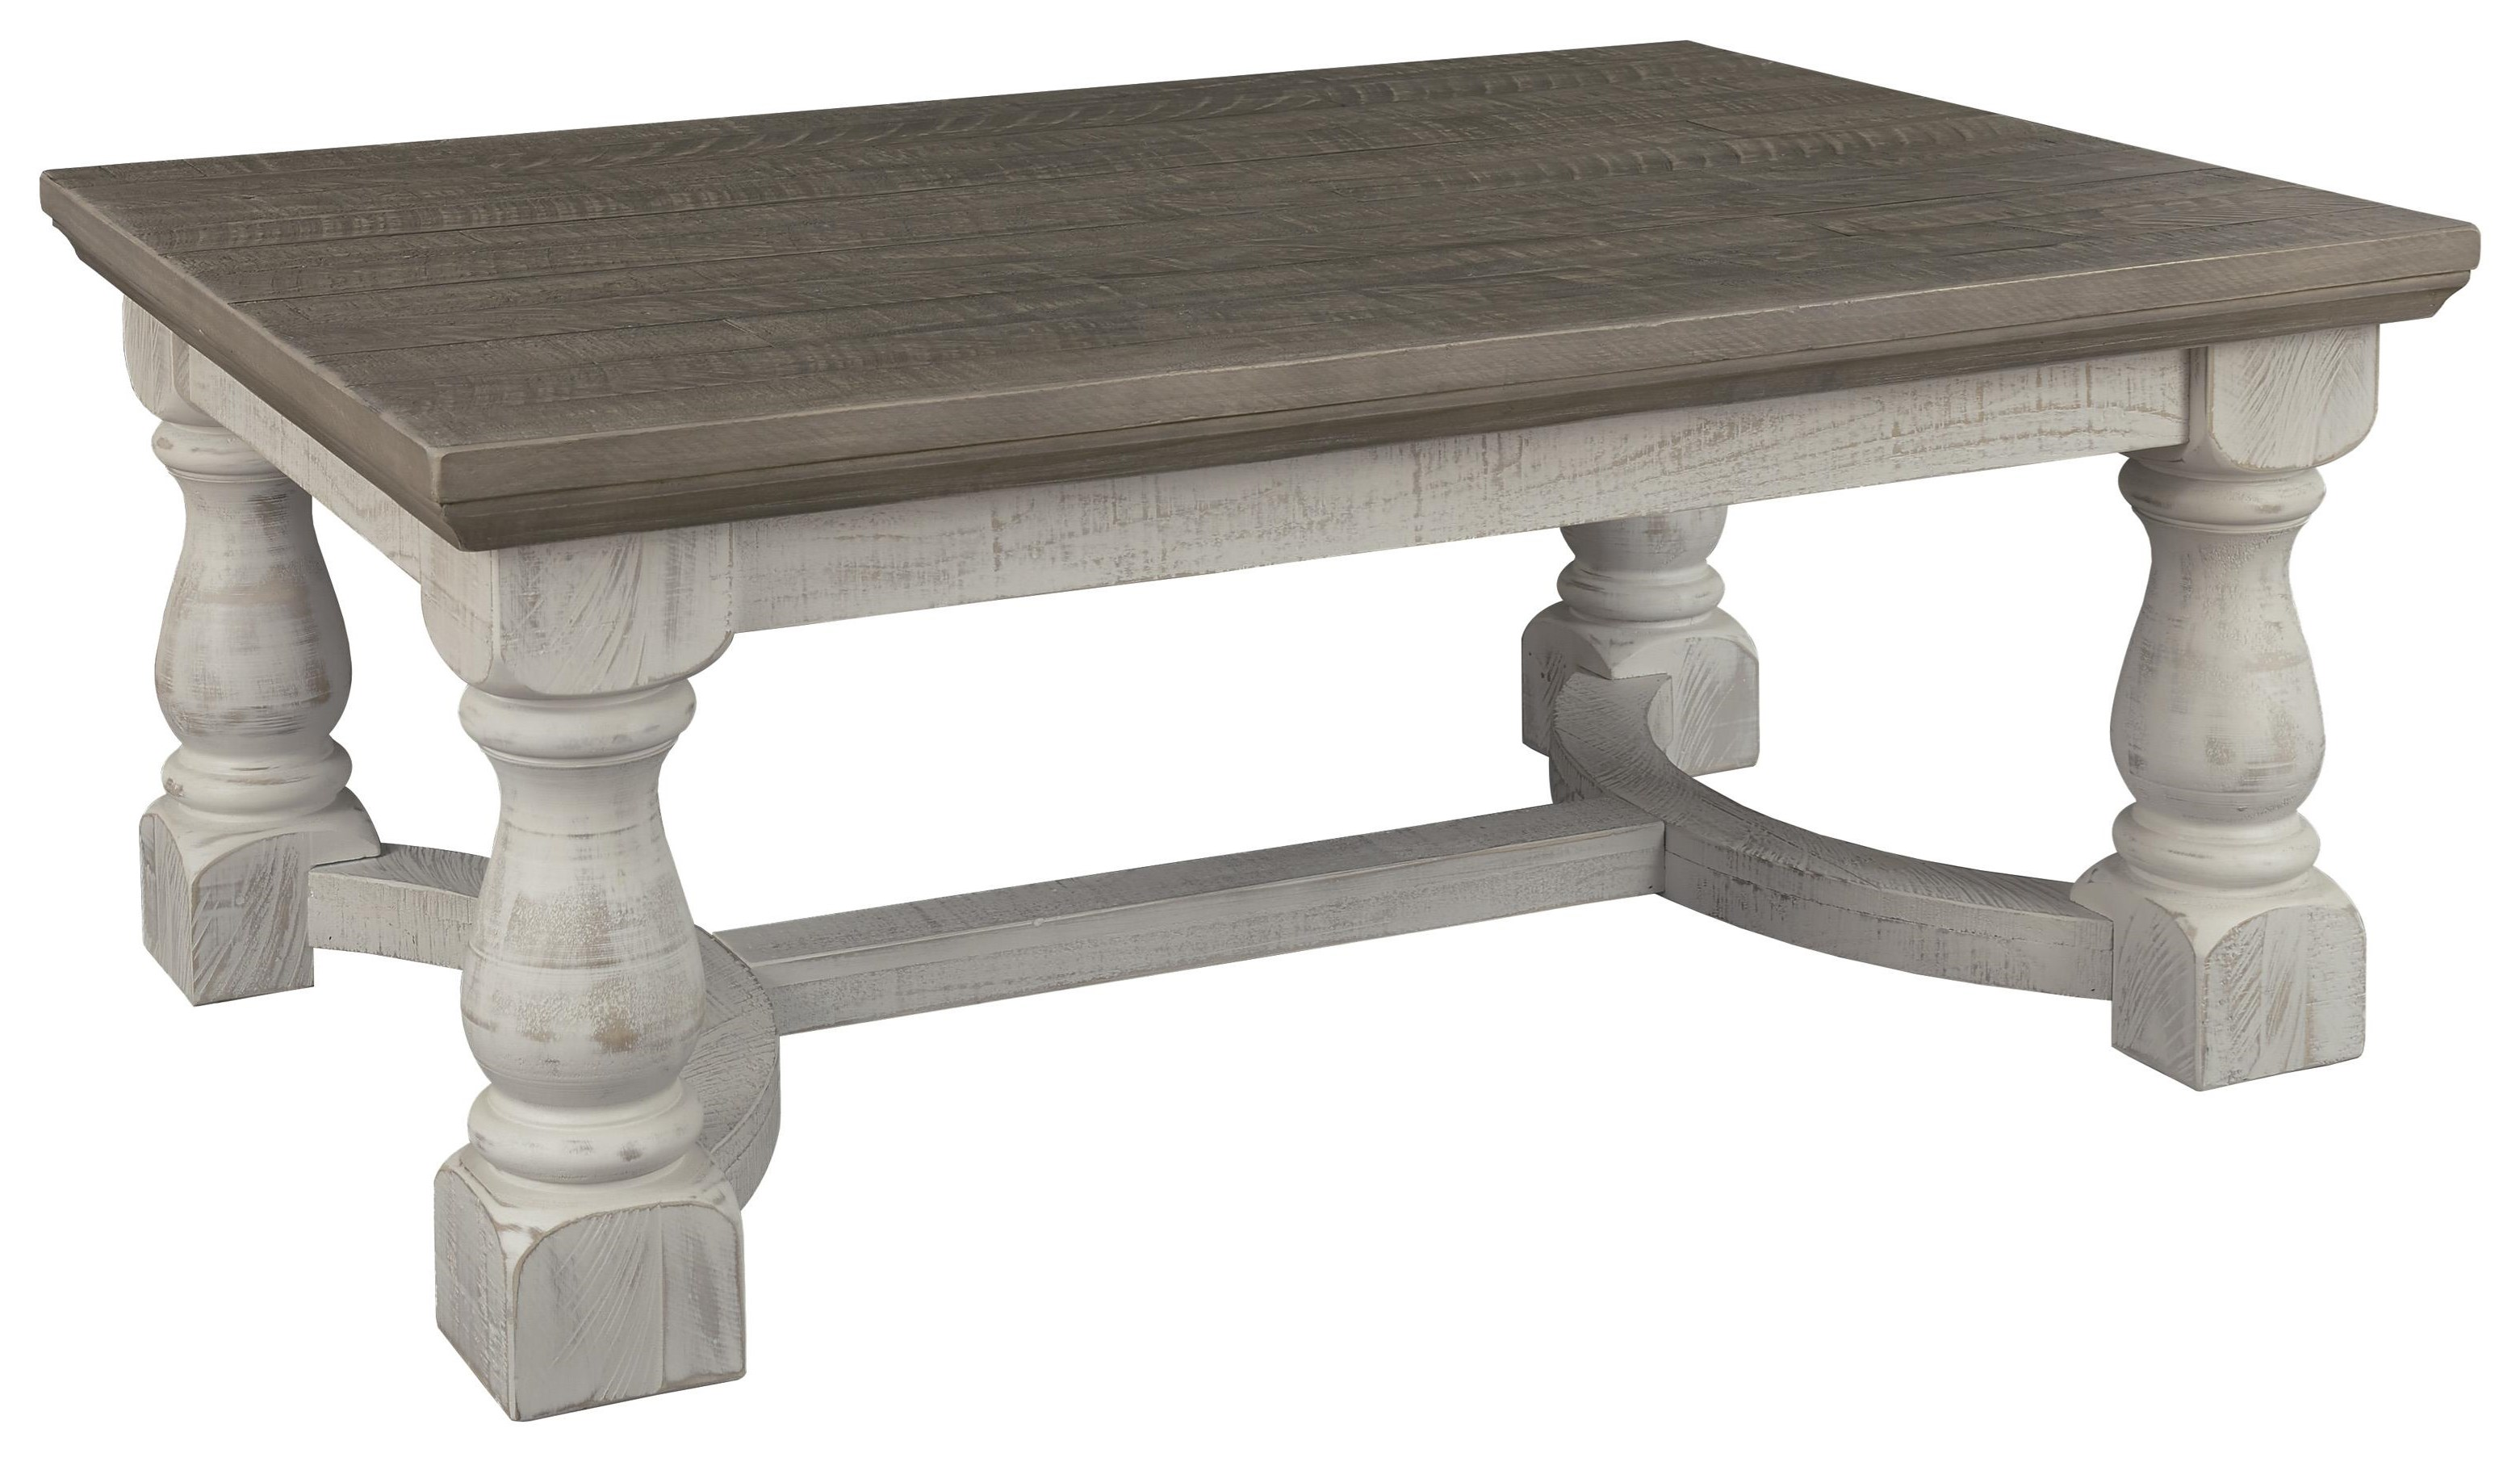 Havalance Cocktail Table and 2 End Tables Set by Signature Design by Ashley at Sam Levitz Furniture